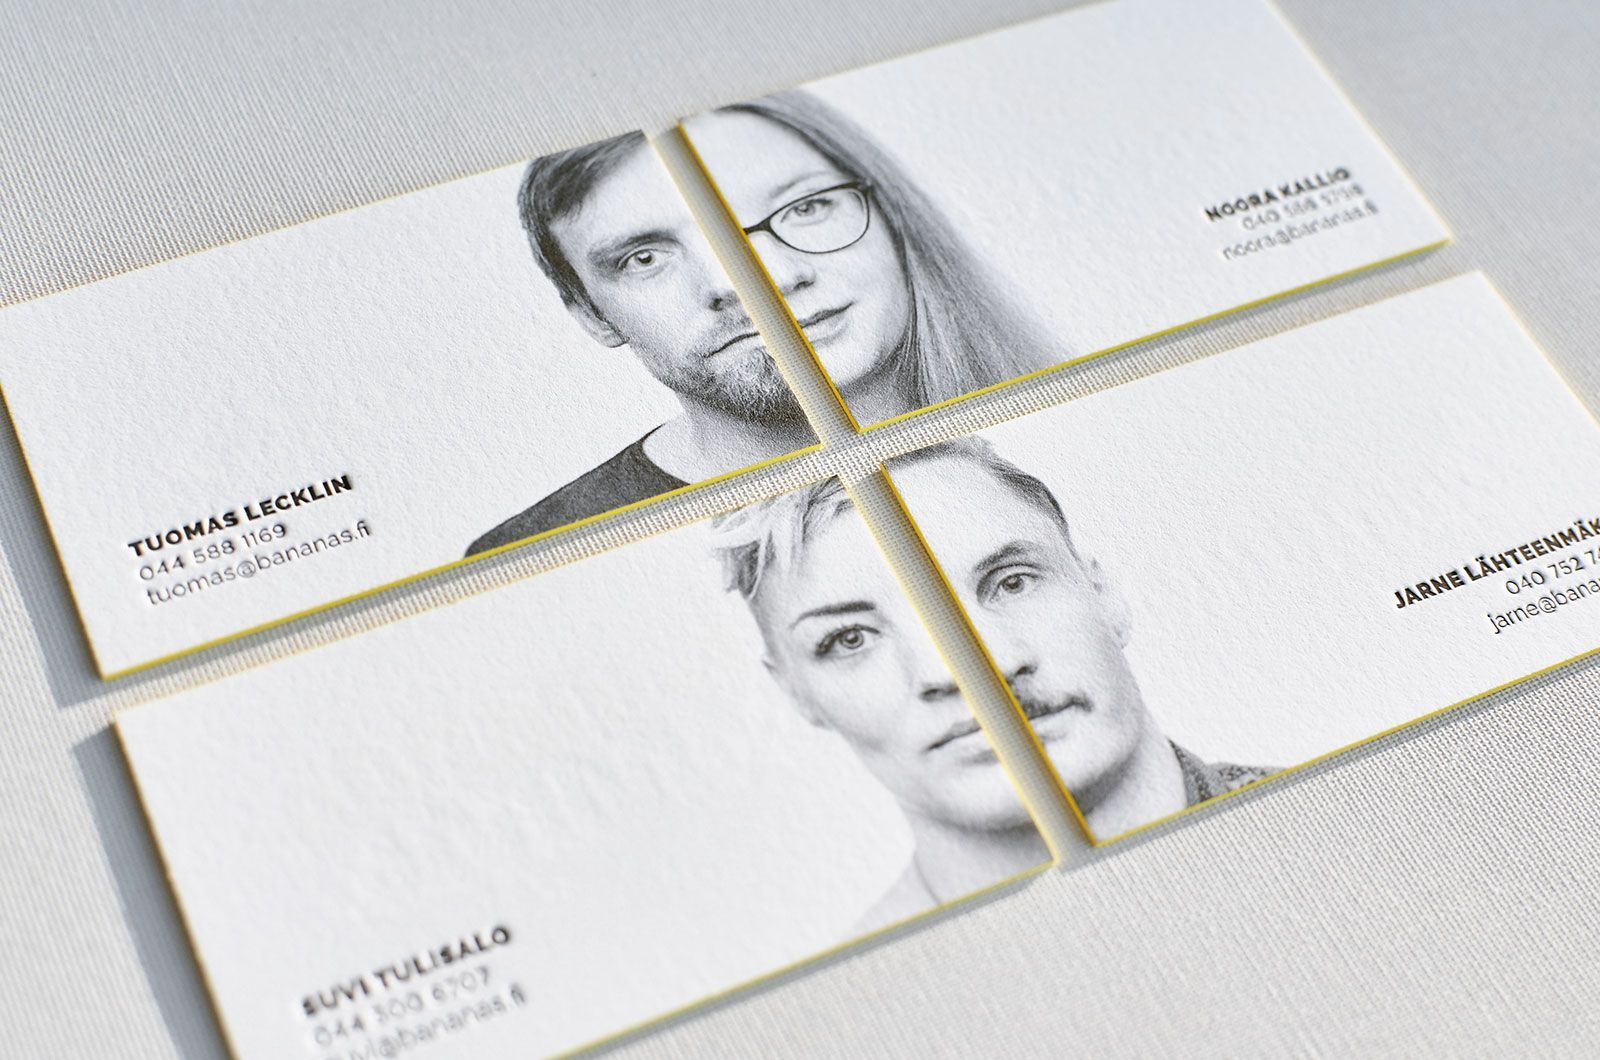 For us business cards with portraits always looked quite strange ...